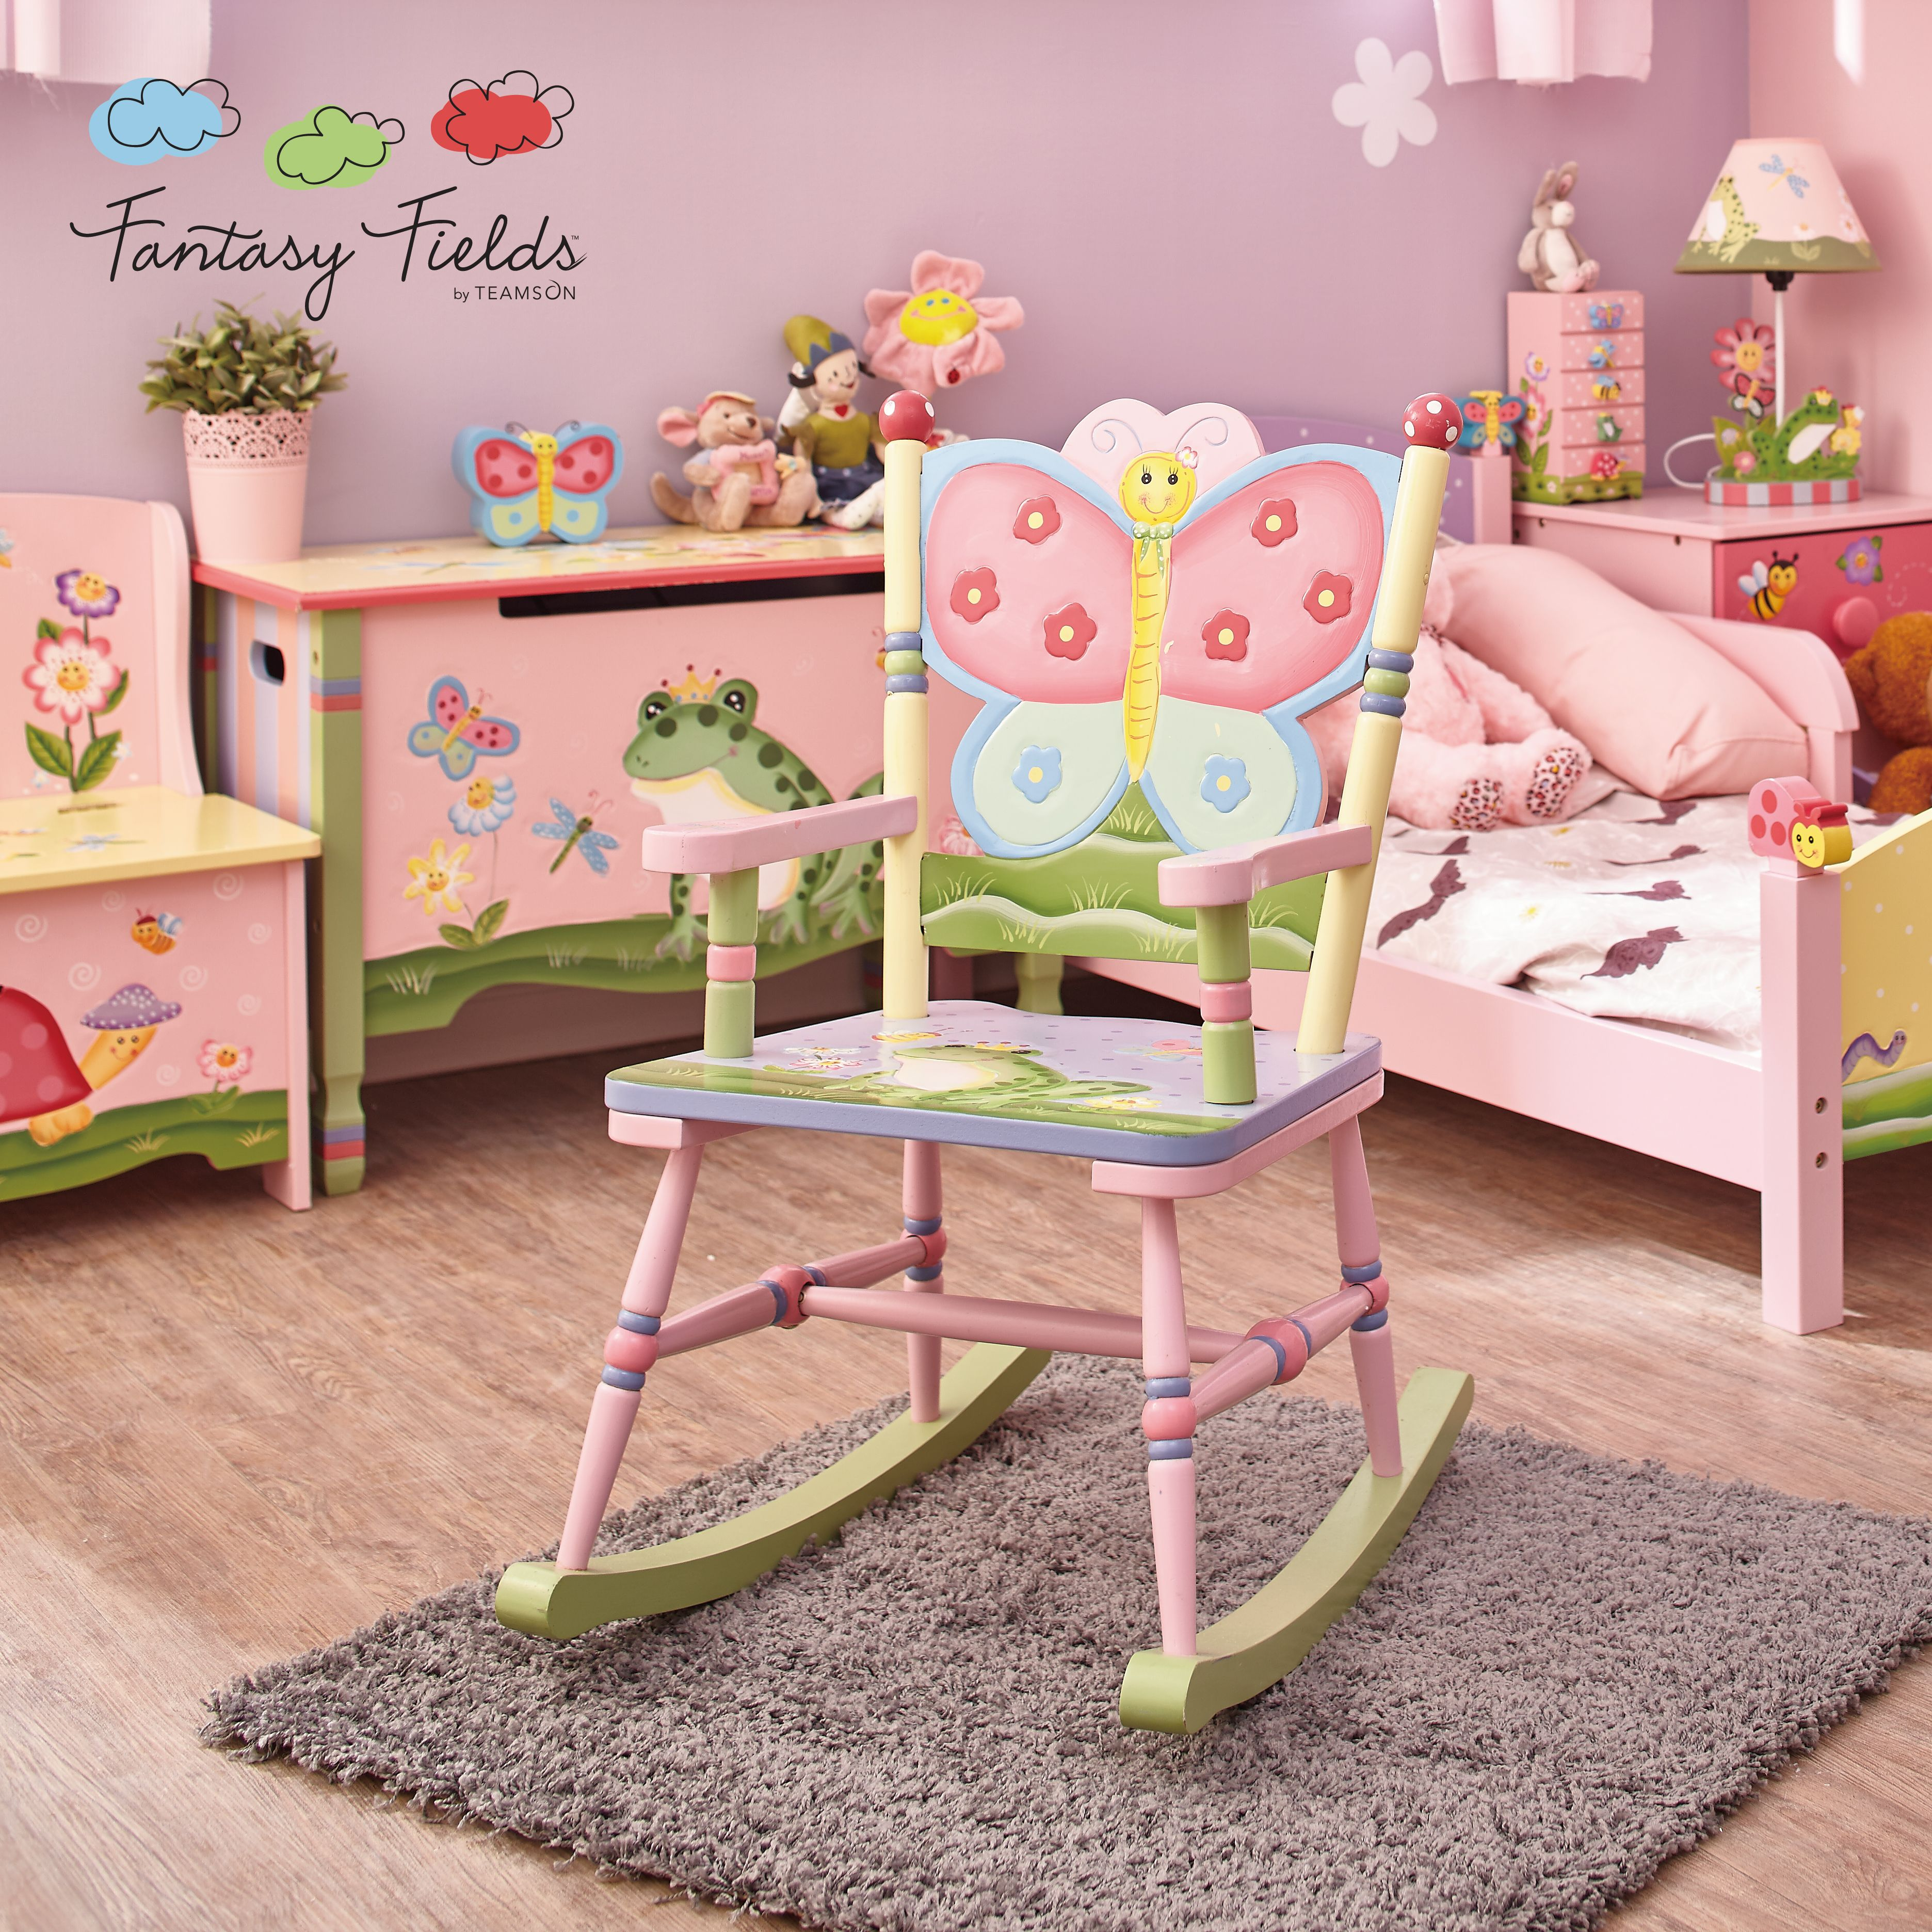 Fantasy fields magic garden rocking chair kids bedroom ideas rock yourself into imagination with fantasy fields magic garden rocking chair this rocker features a sturdy backing shaped like a colorful pink and solutioingenieria Choice Image